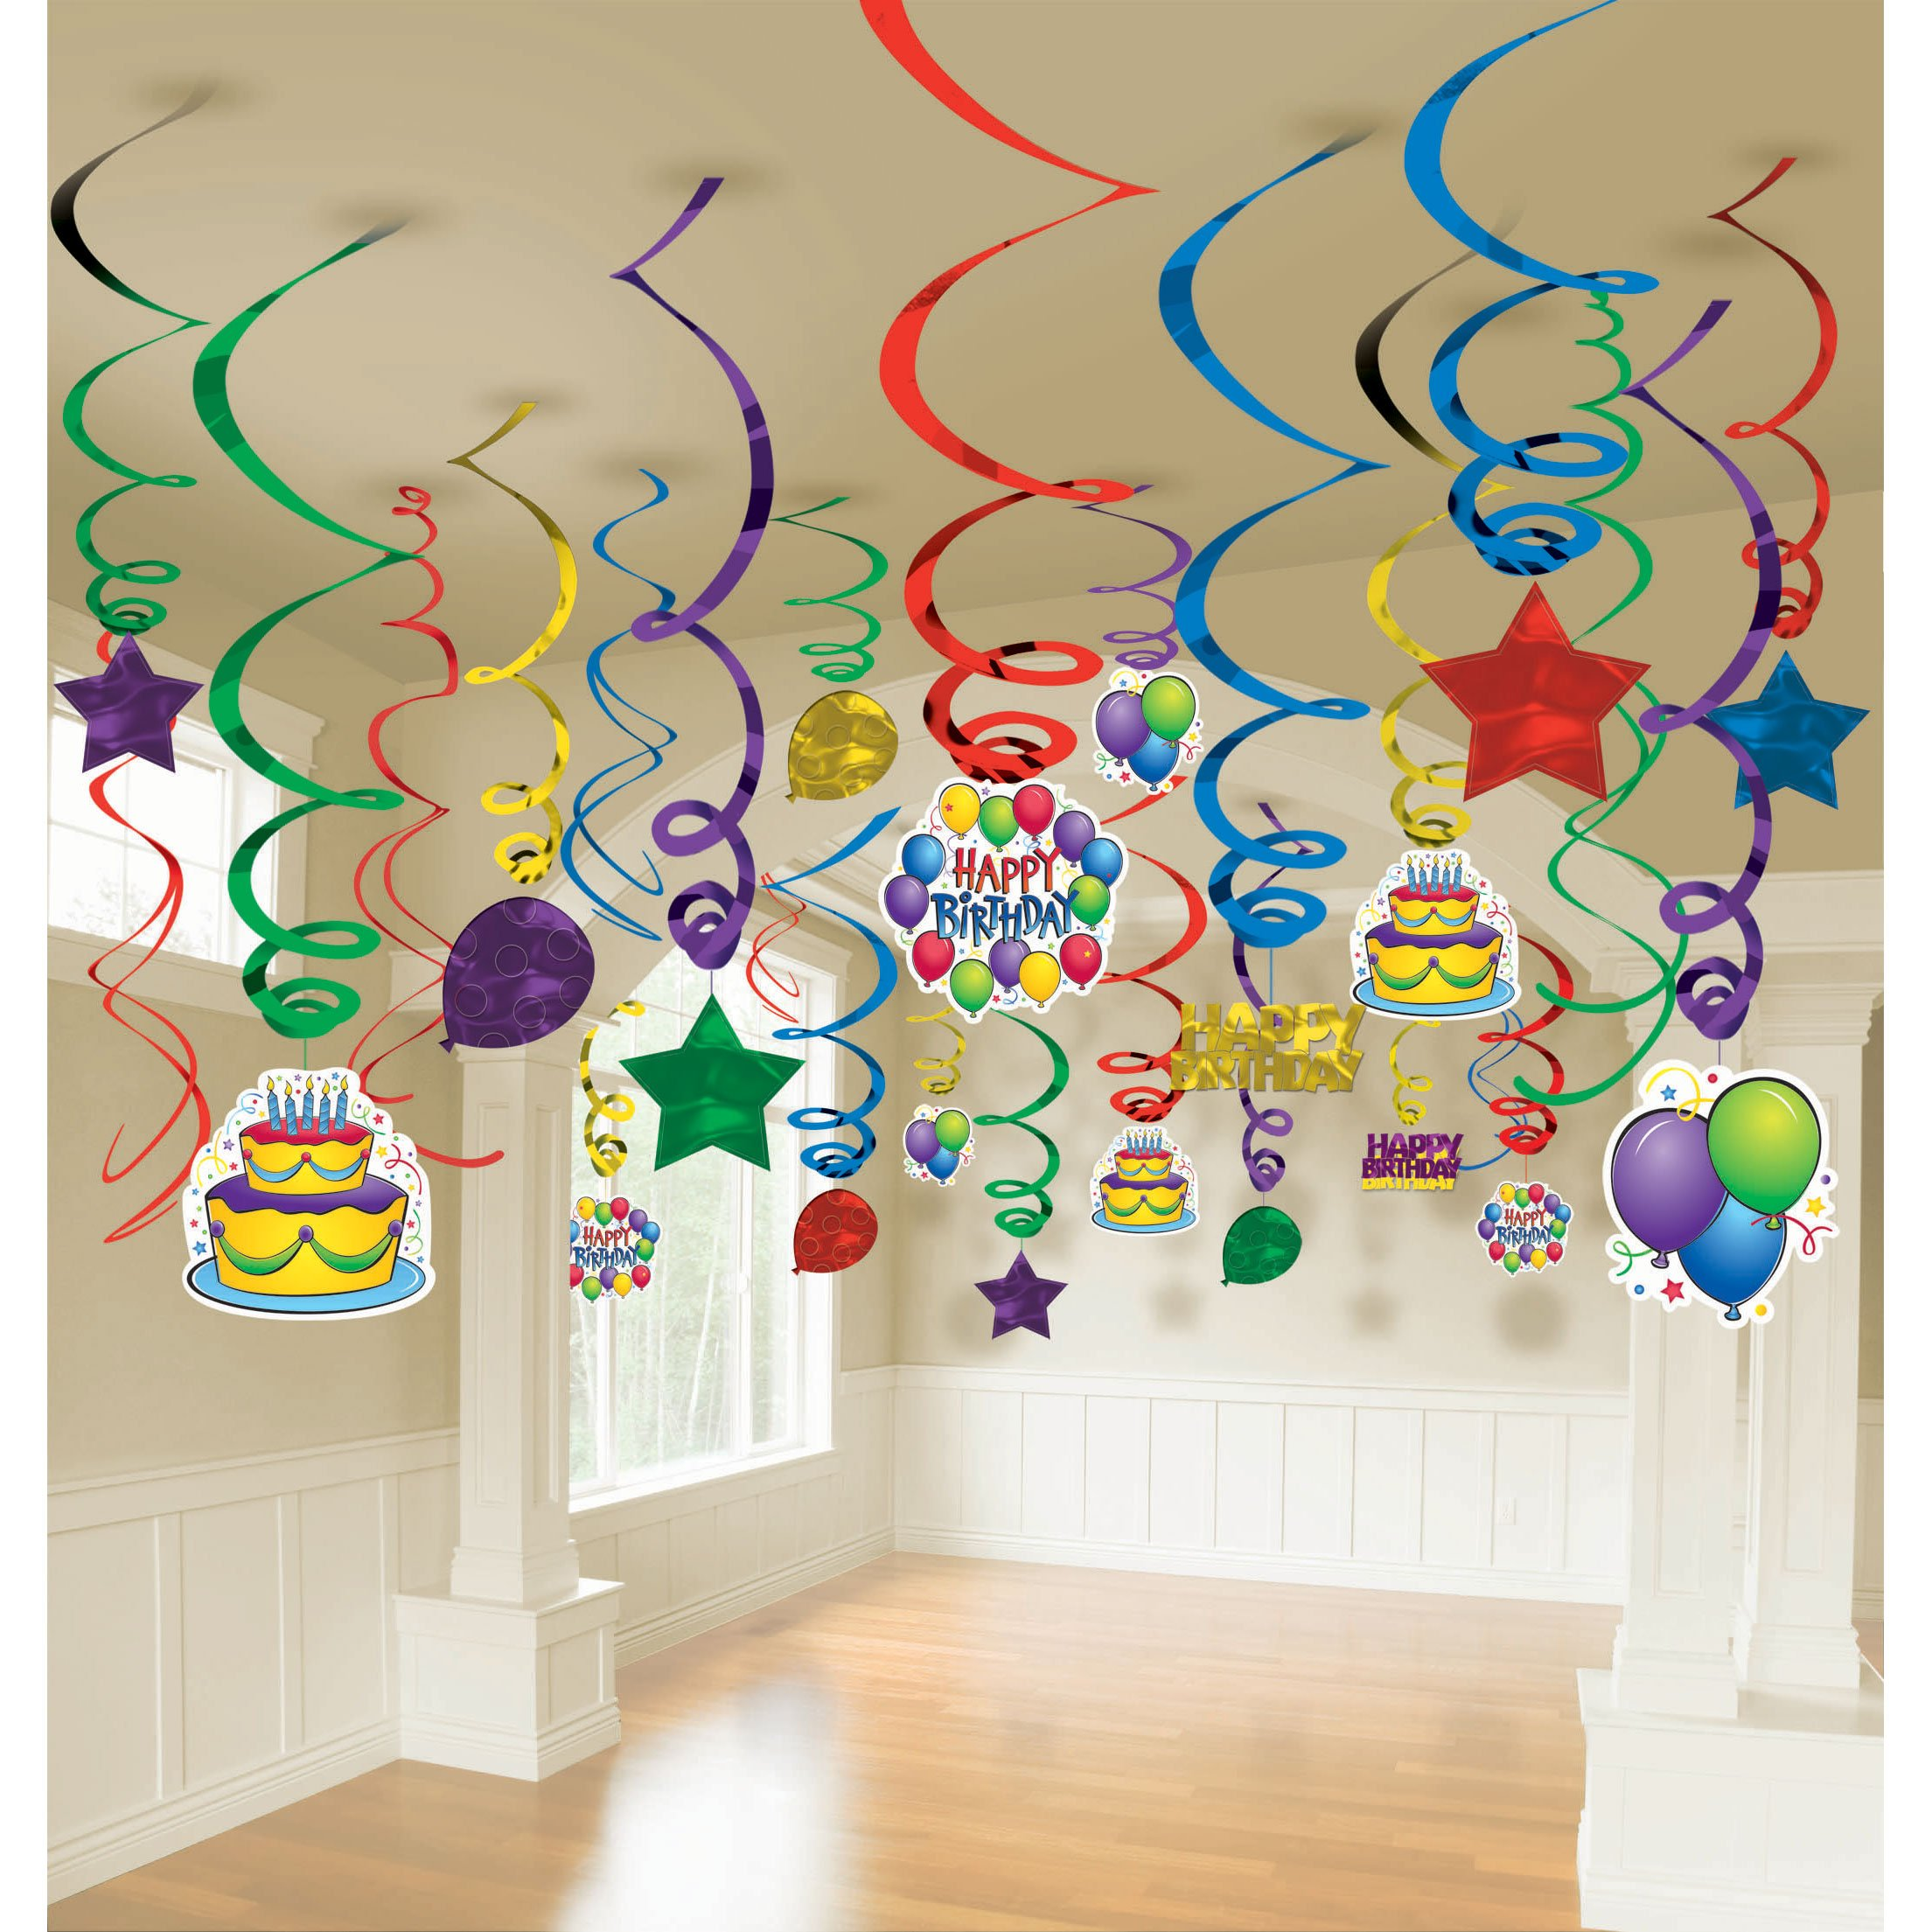 Balloon Fun Mega Value Pack Swirl Decorations 50 Party Supplies